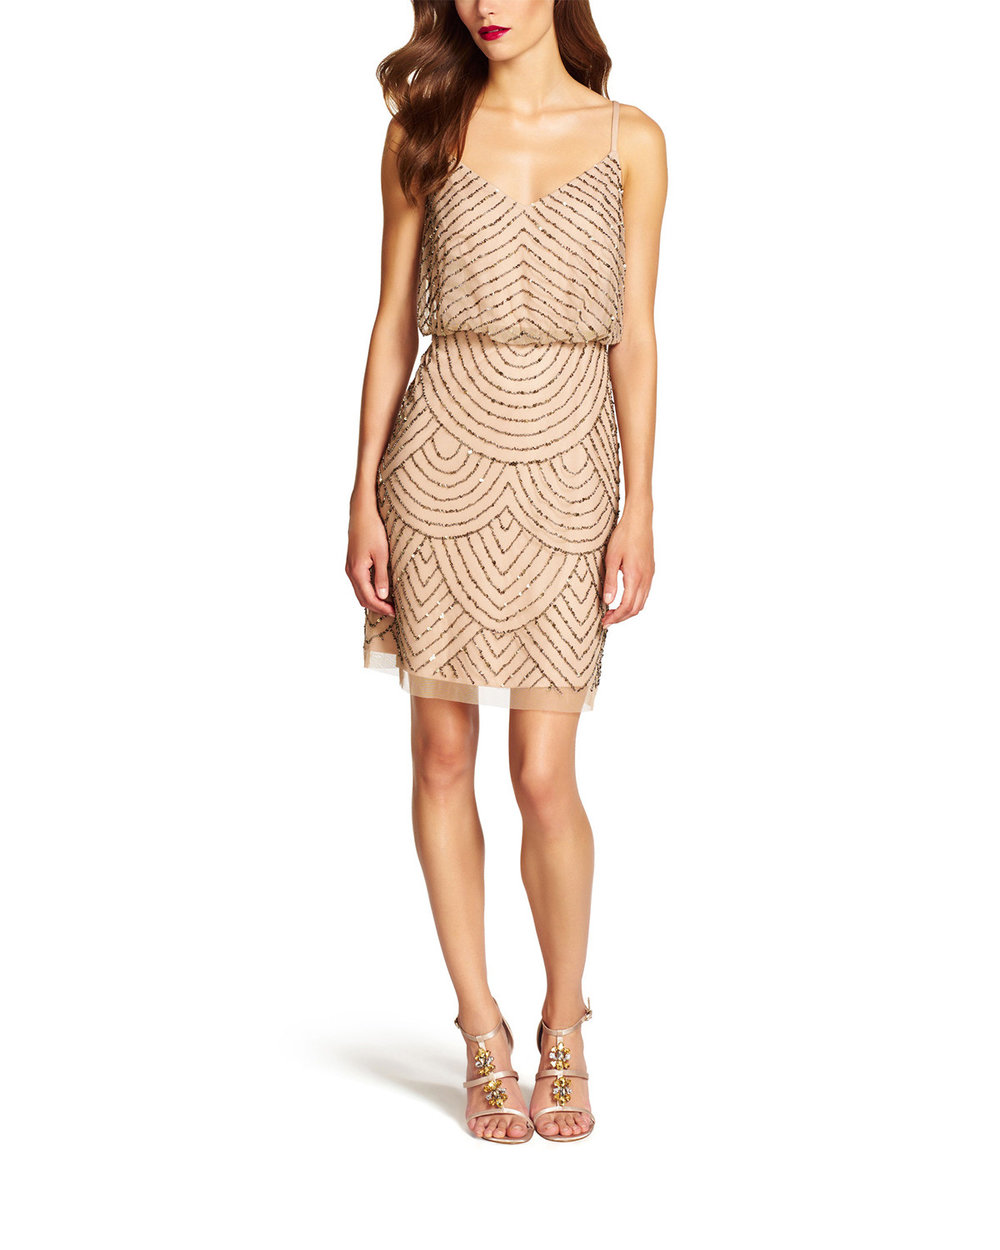 Brideside Adrianna Papell Dress Taupe Pink $198